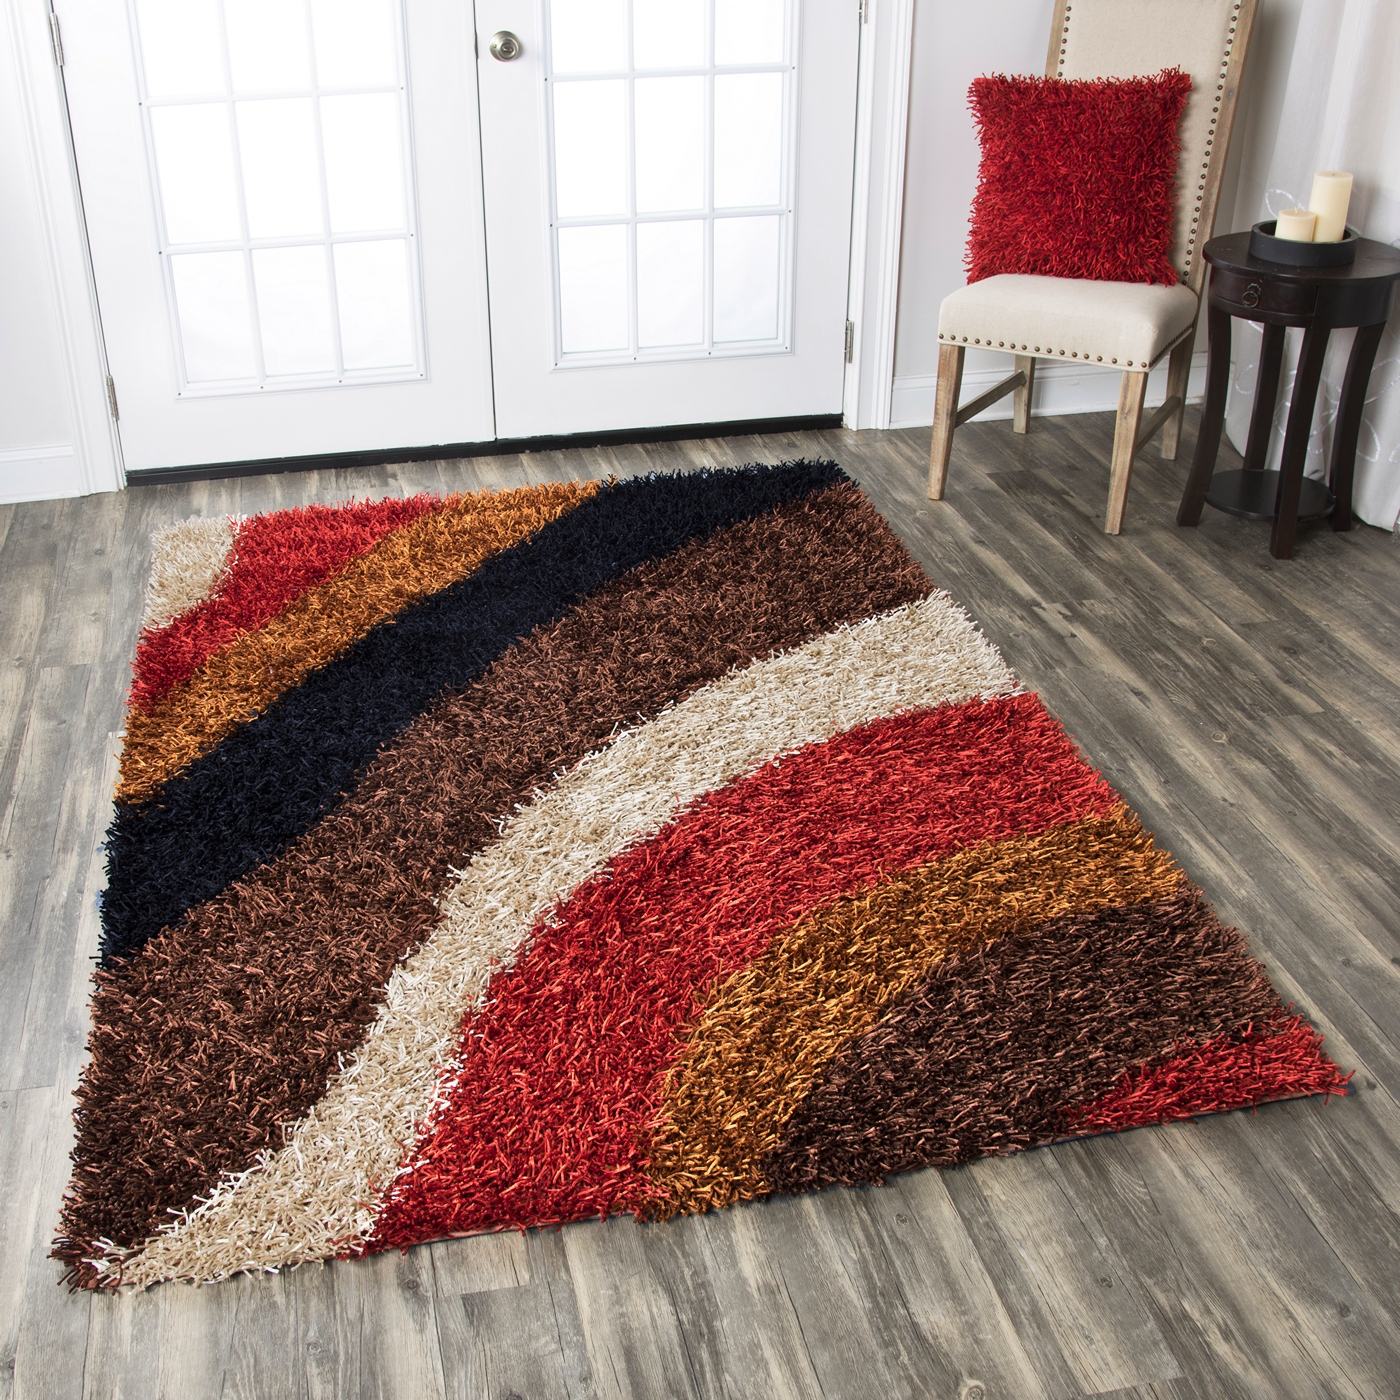 Shop Linon Moroccan Mekenes Camel Brown Rug: Kempton Ultra Plush Striped Area Rug In Red Brown Khaki